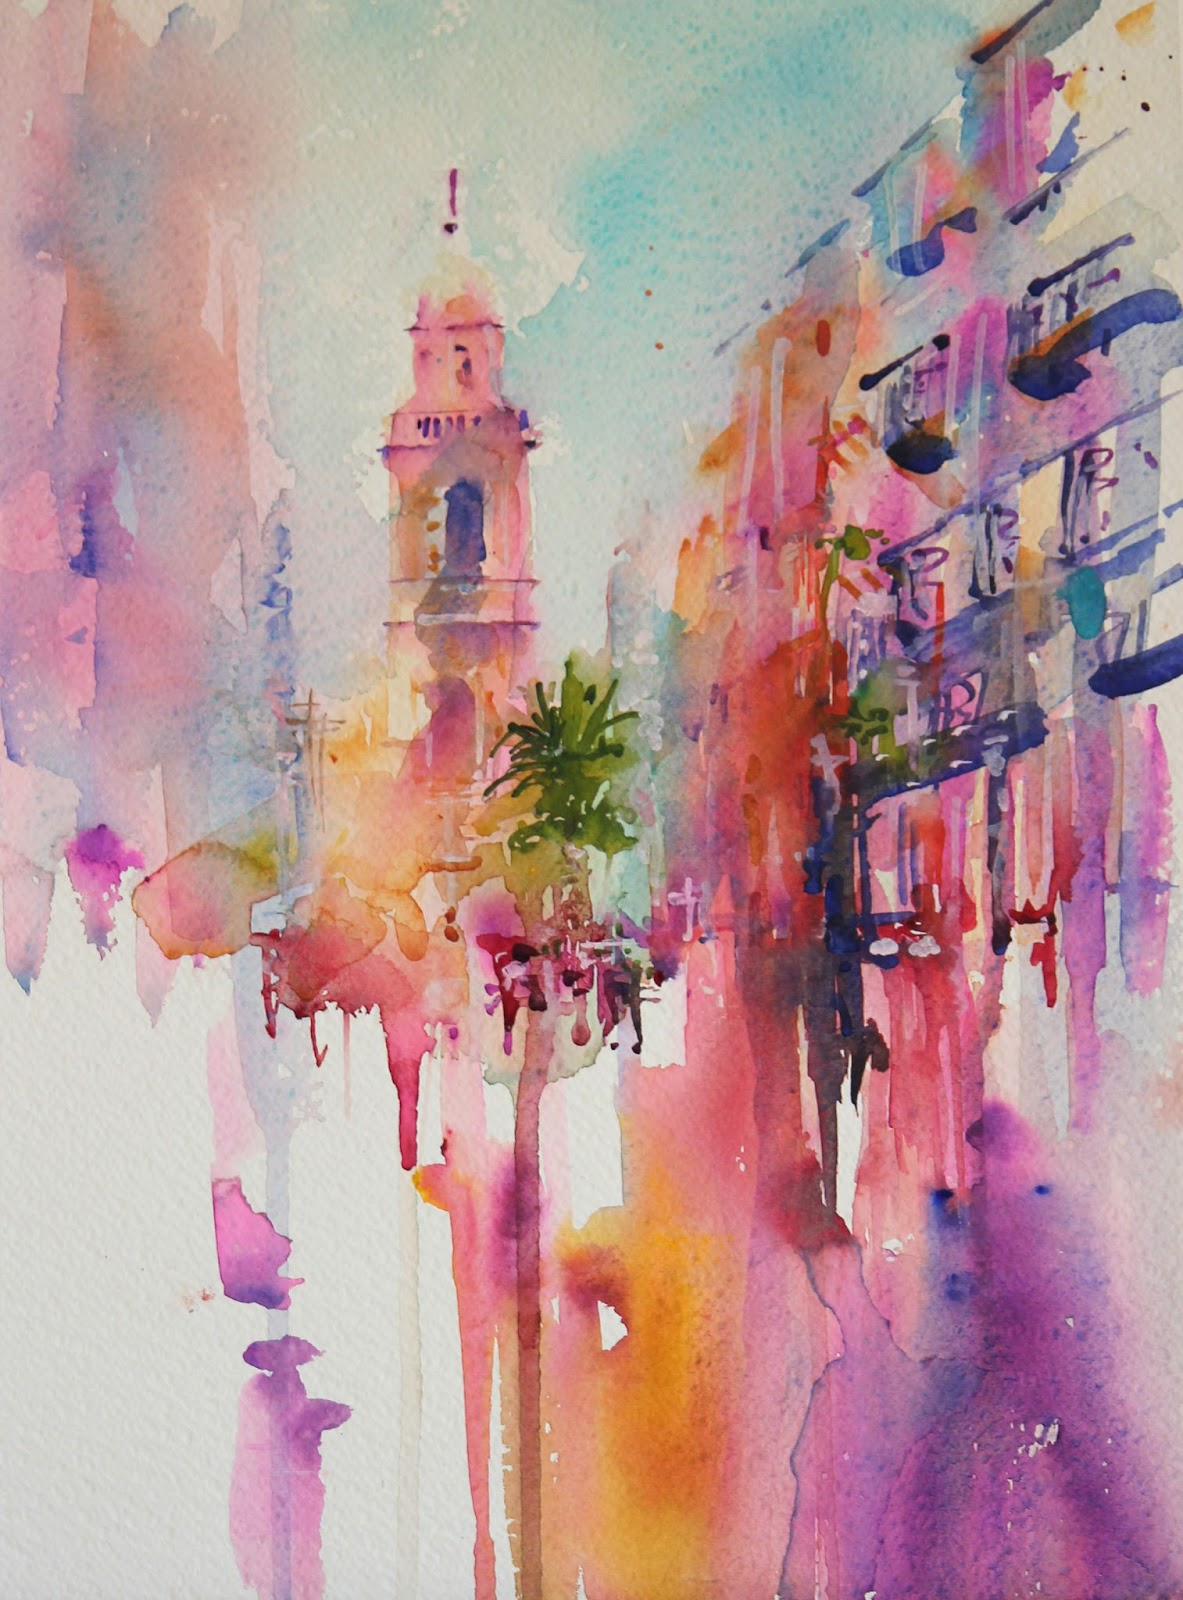 Watercolours With Life: World of Watercolour Exhibition ...